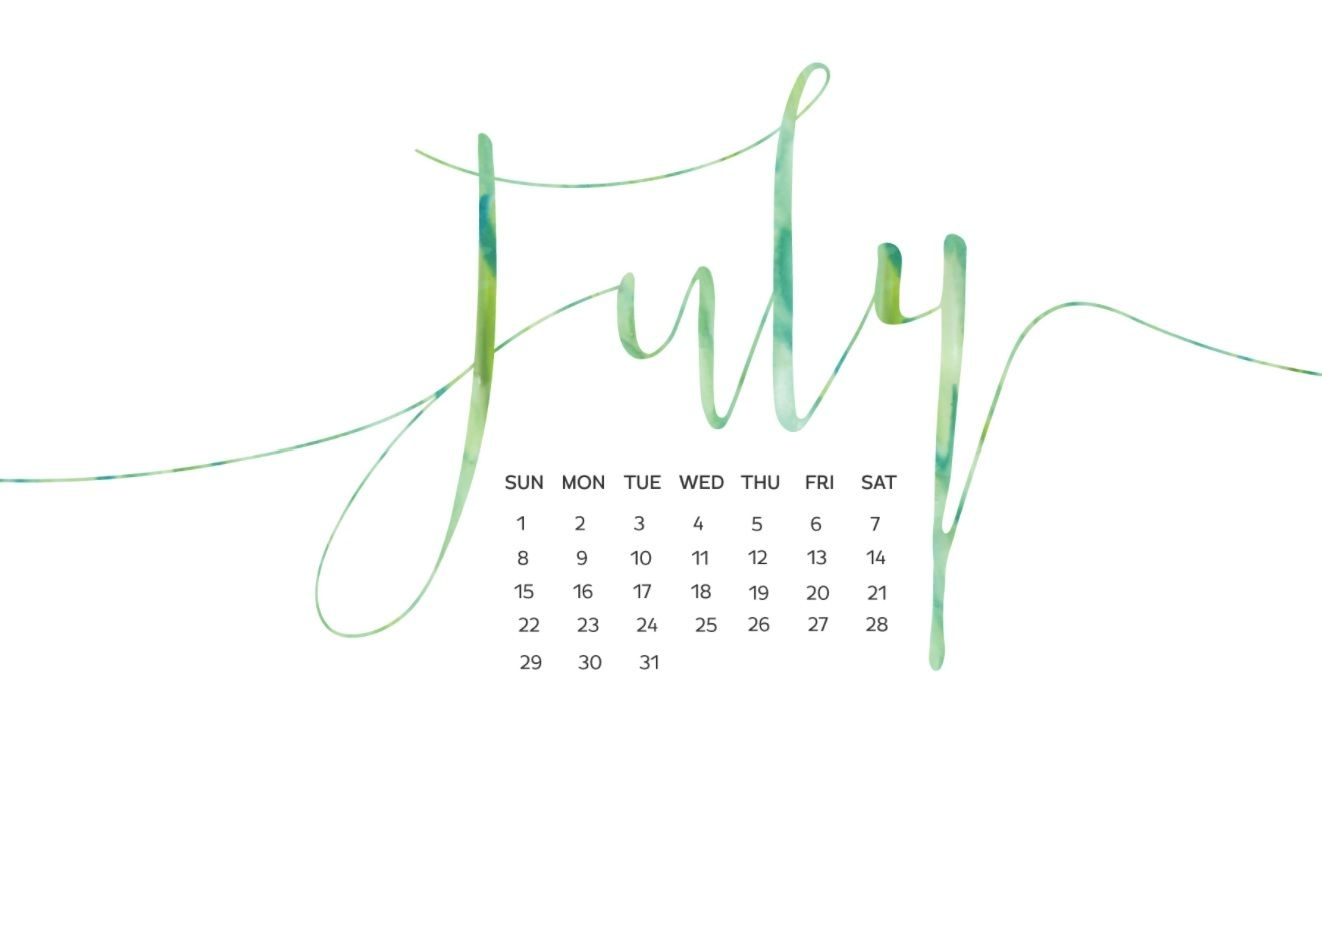 july 2019 calendar wallpapers for background::July 2019 iPhone Calendar Wallpaper